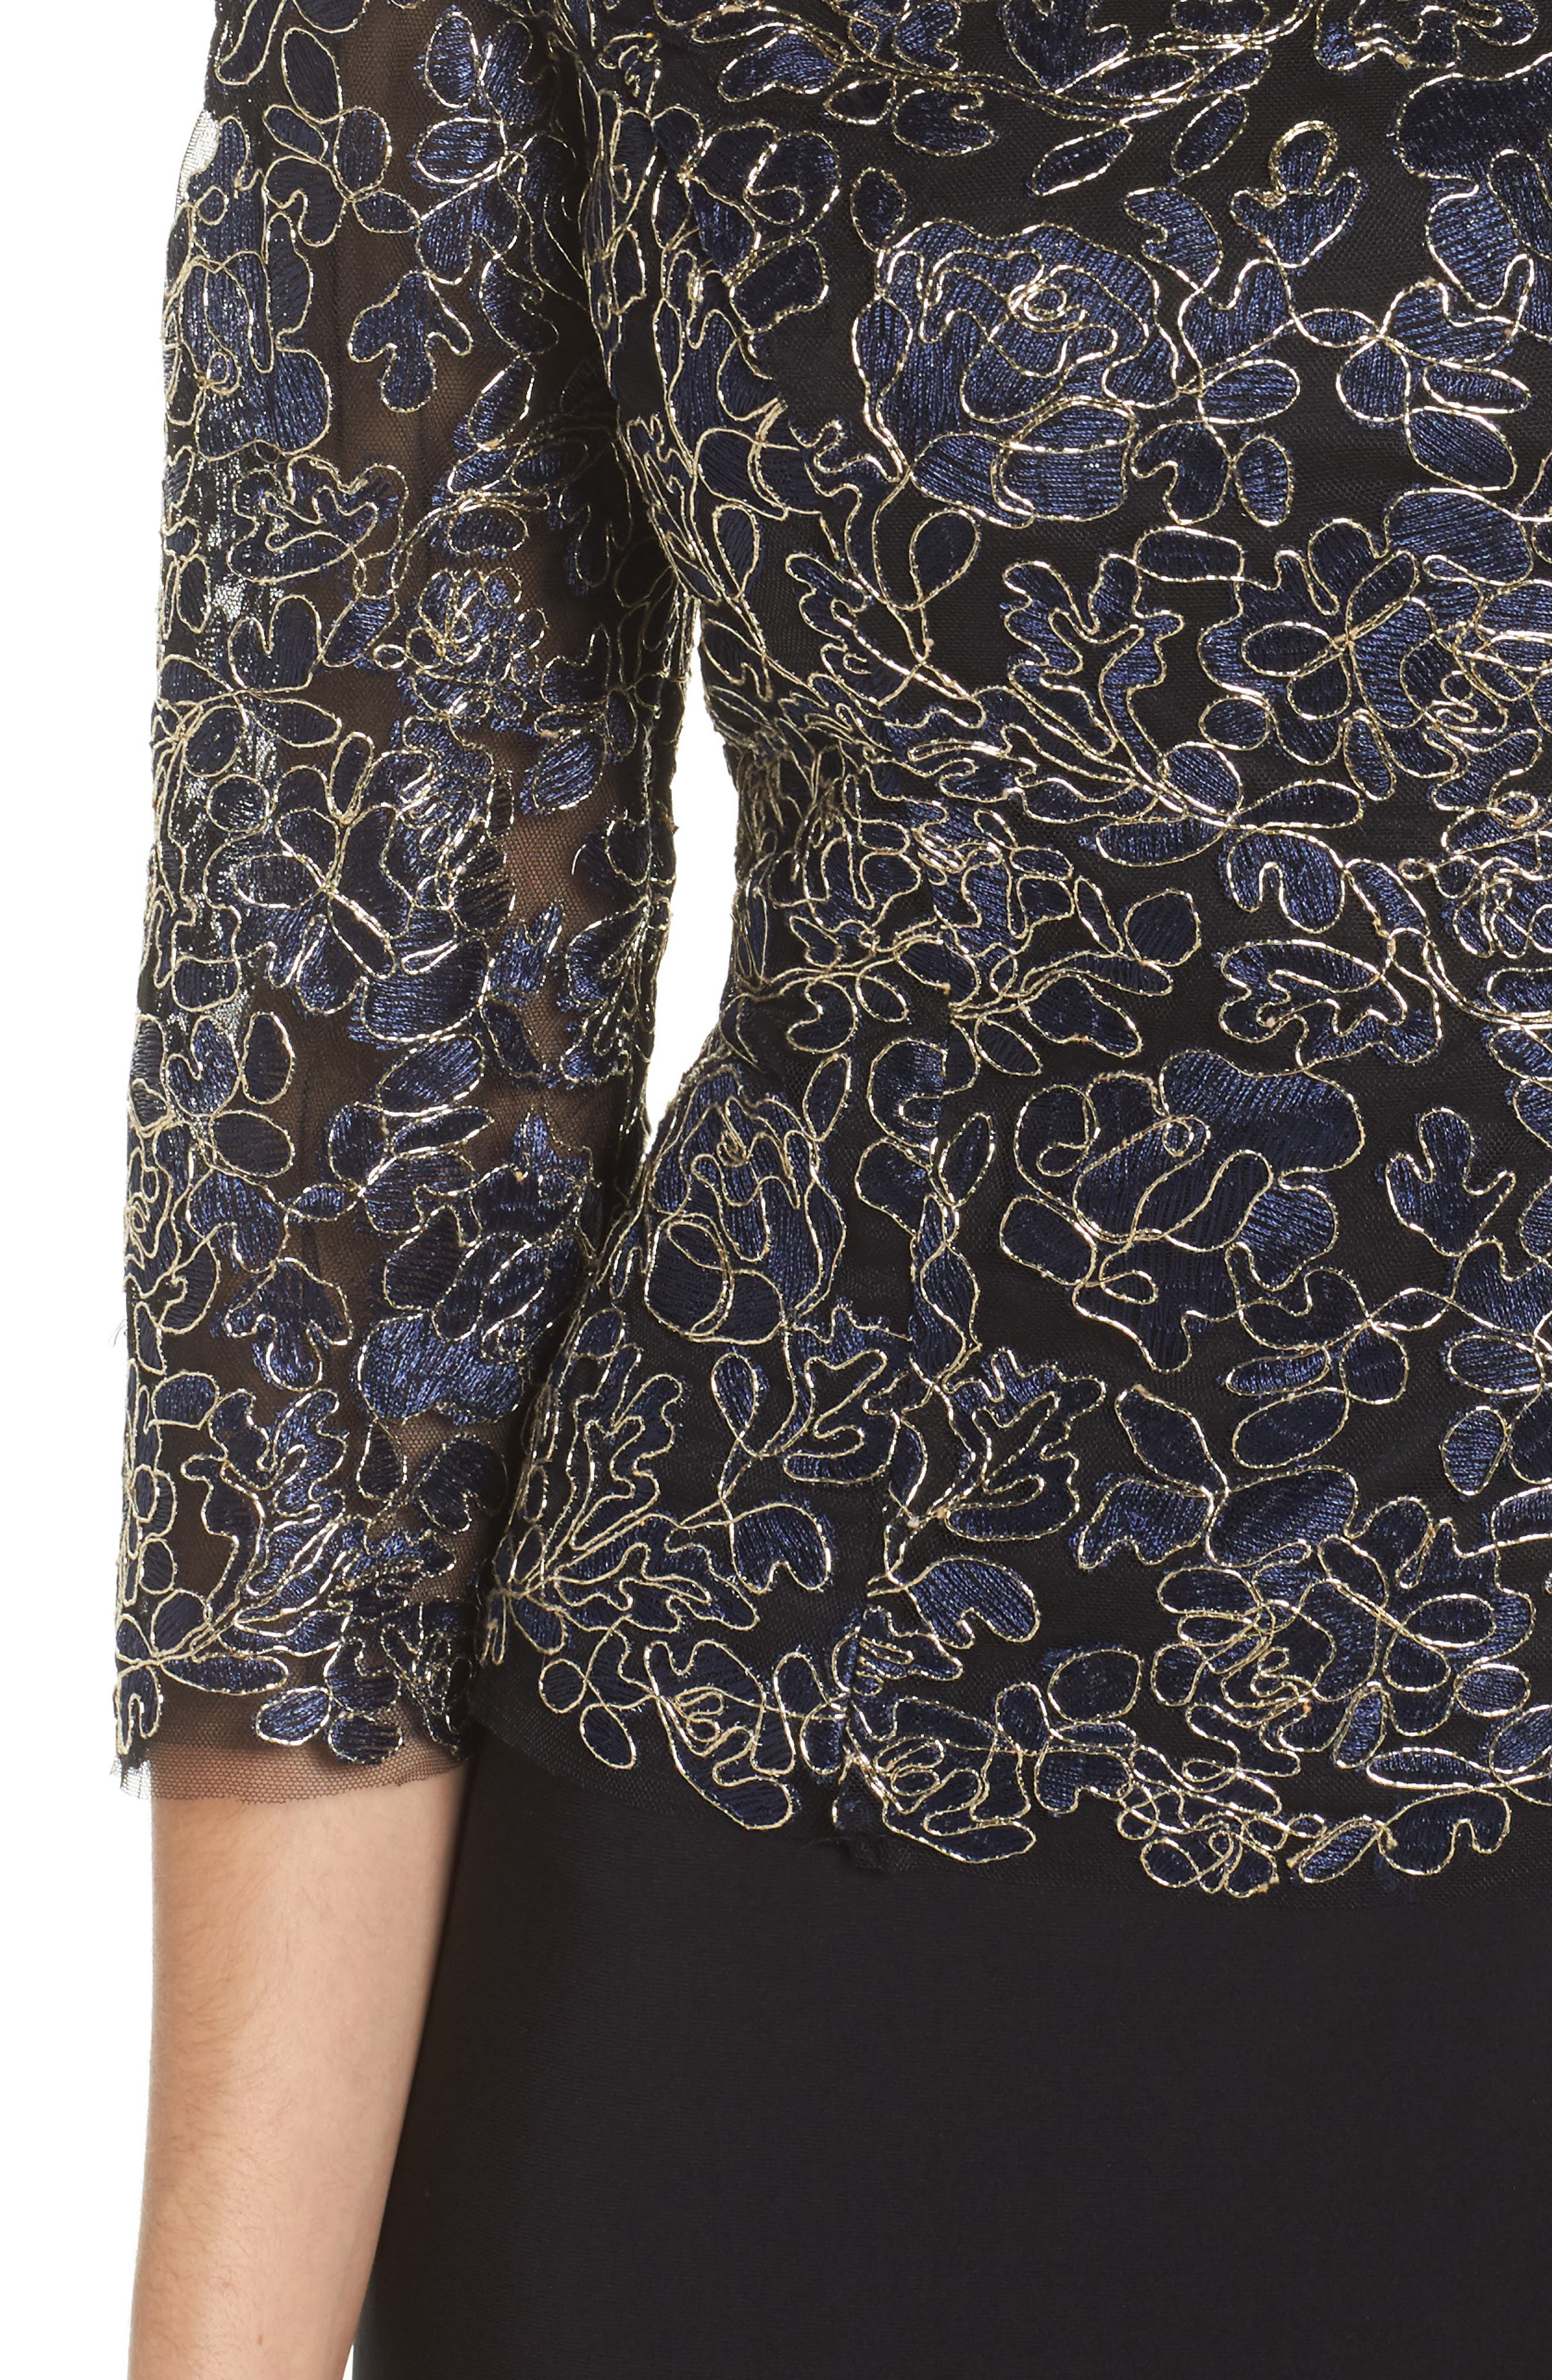 Embroidered Lace Mock Two-Piece Dress,                             Alternate thumbnail 4, color,                             Navy/ Gold